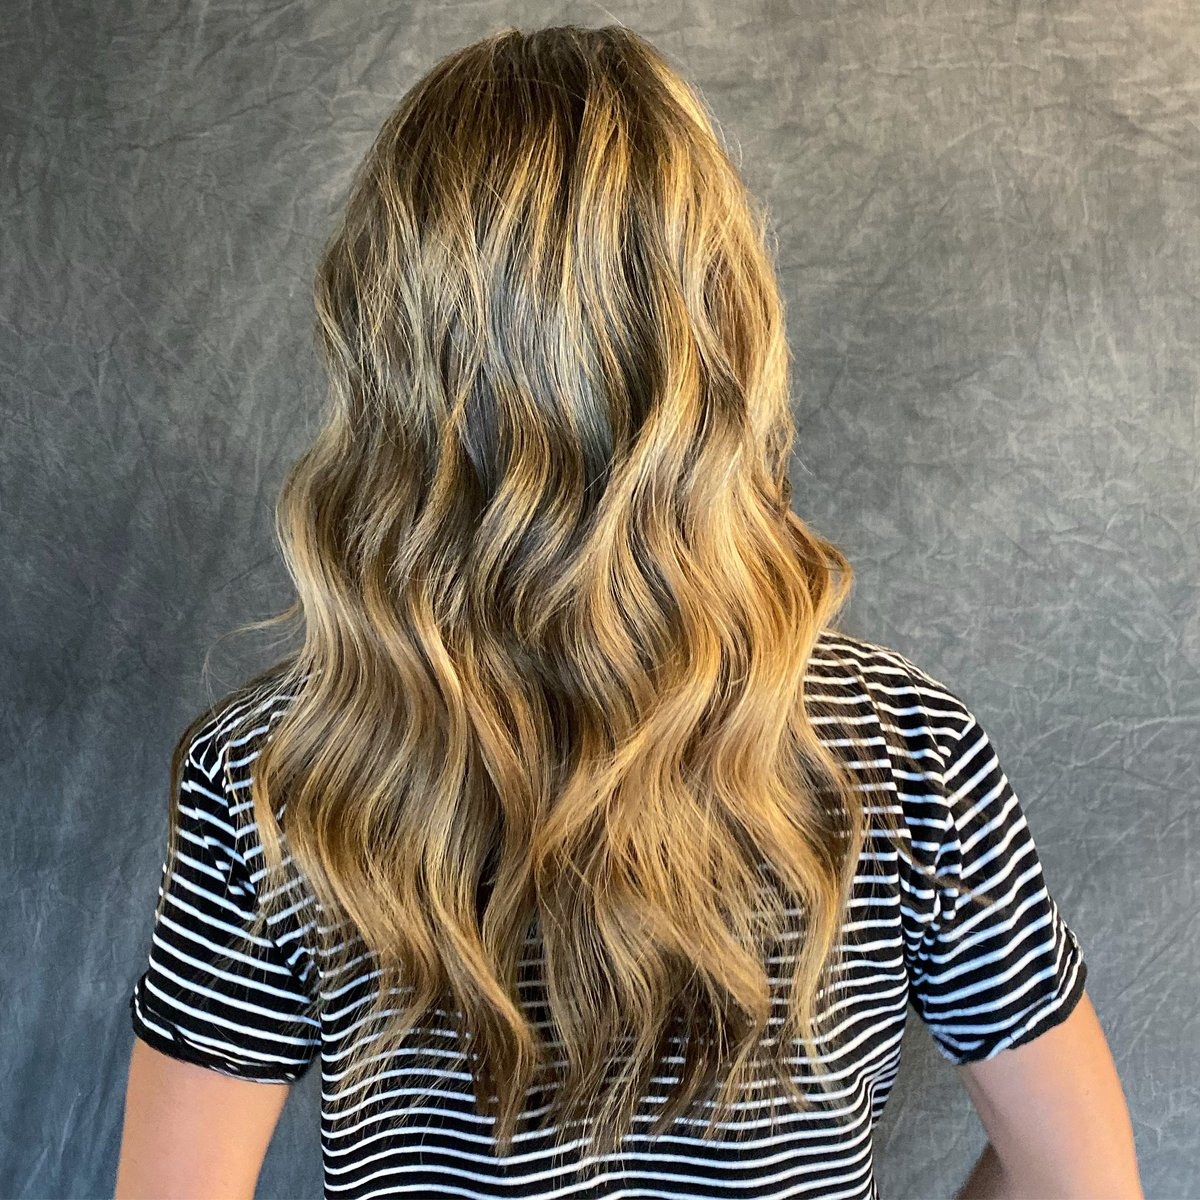 Do things that make YOU happy and feel confident!  she got 2.5 rows of NBR Extensions!   Apply today! Click the link! https://linktr.ee/wolfeandmane  #mermaidhair #redken #nbrextensions #boulderhair #longmonthair #boulderstylist #longhair #bronde #hair #FridayFeeling #coloradohairpic.twitter.com/WTQxmji58j